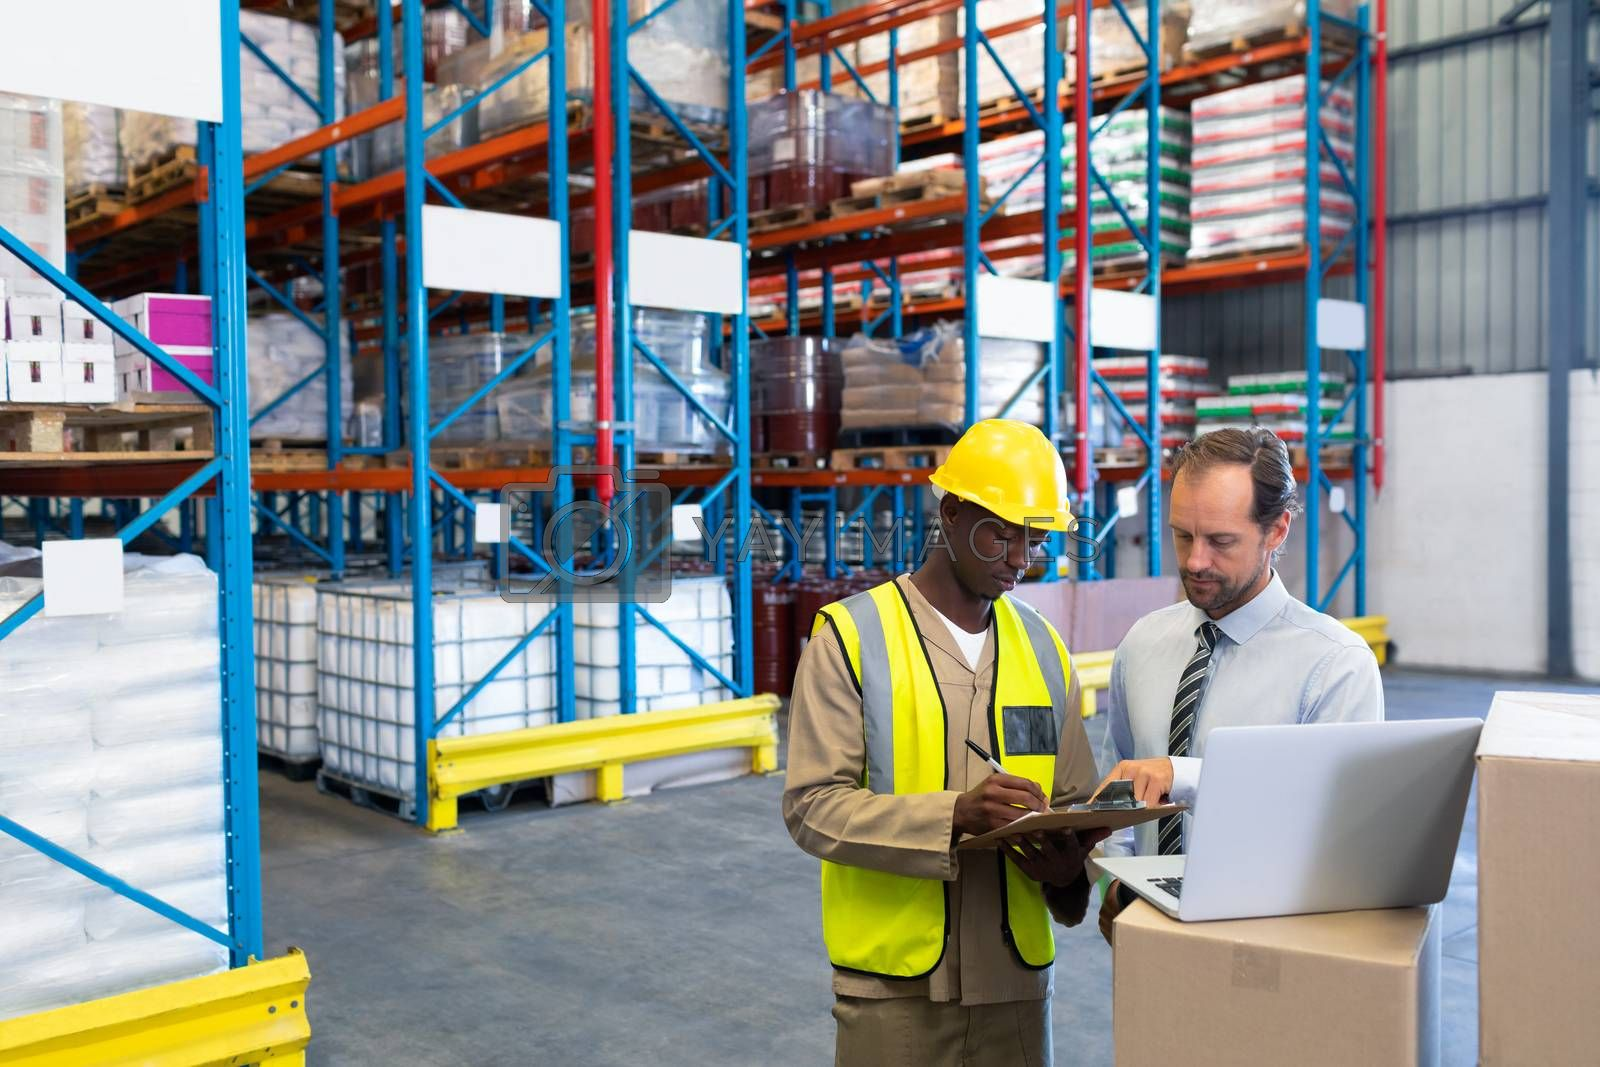 Front view of diverse staffs discussing over clipboard in warehouse. This is a freight transportation and distribution warehouse. Industrial and industrial workers concept